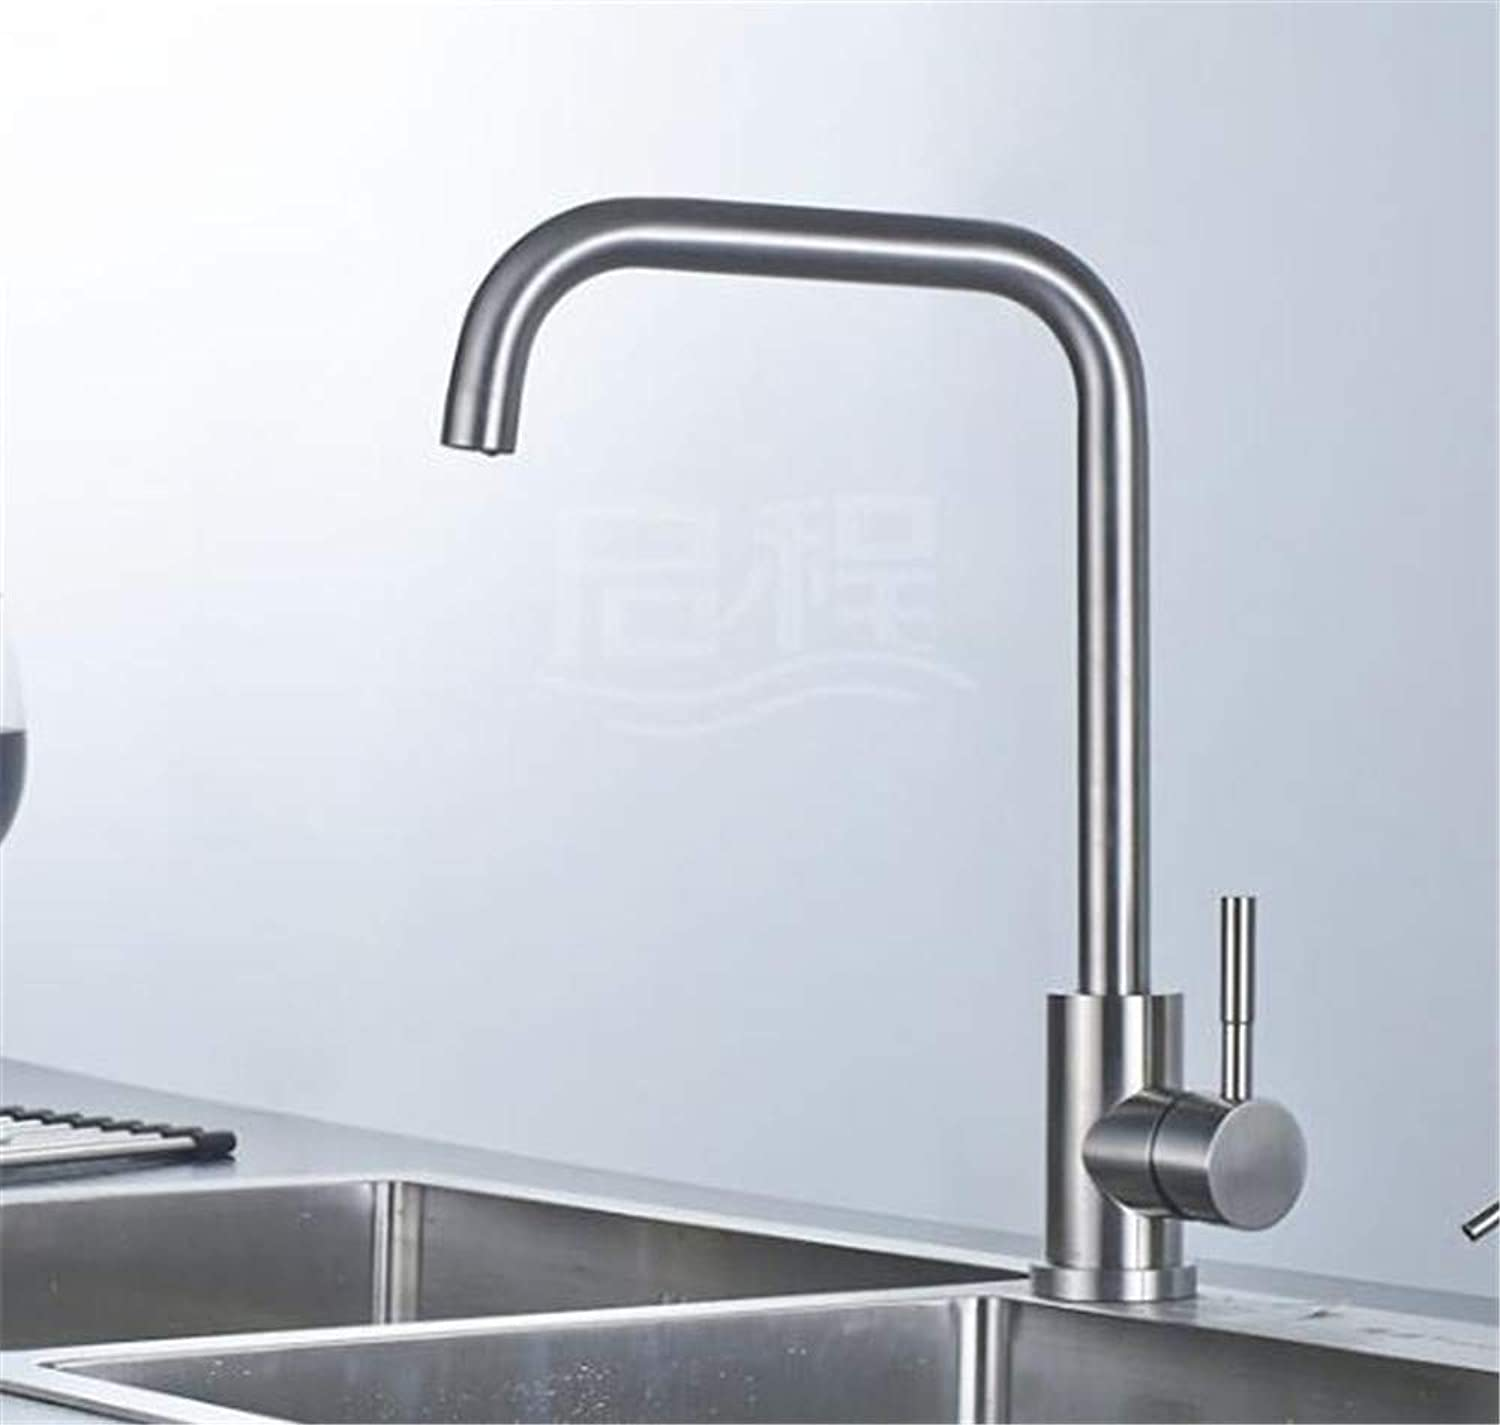 Decorry Hot and Cold Taps 304 Lead Mixer U Cylindrical redating Tank 360 with The Braided Tube